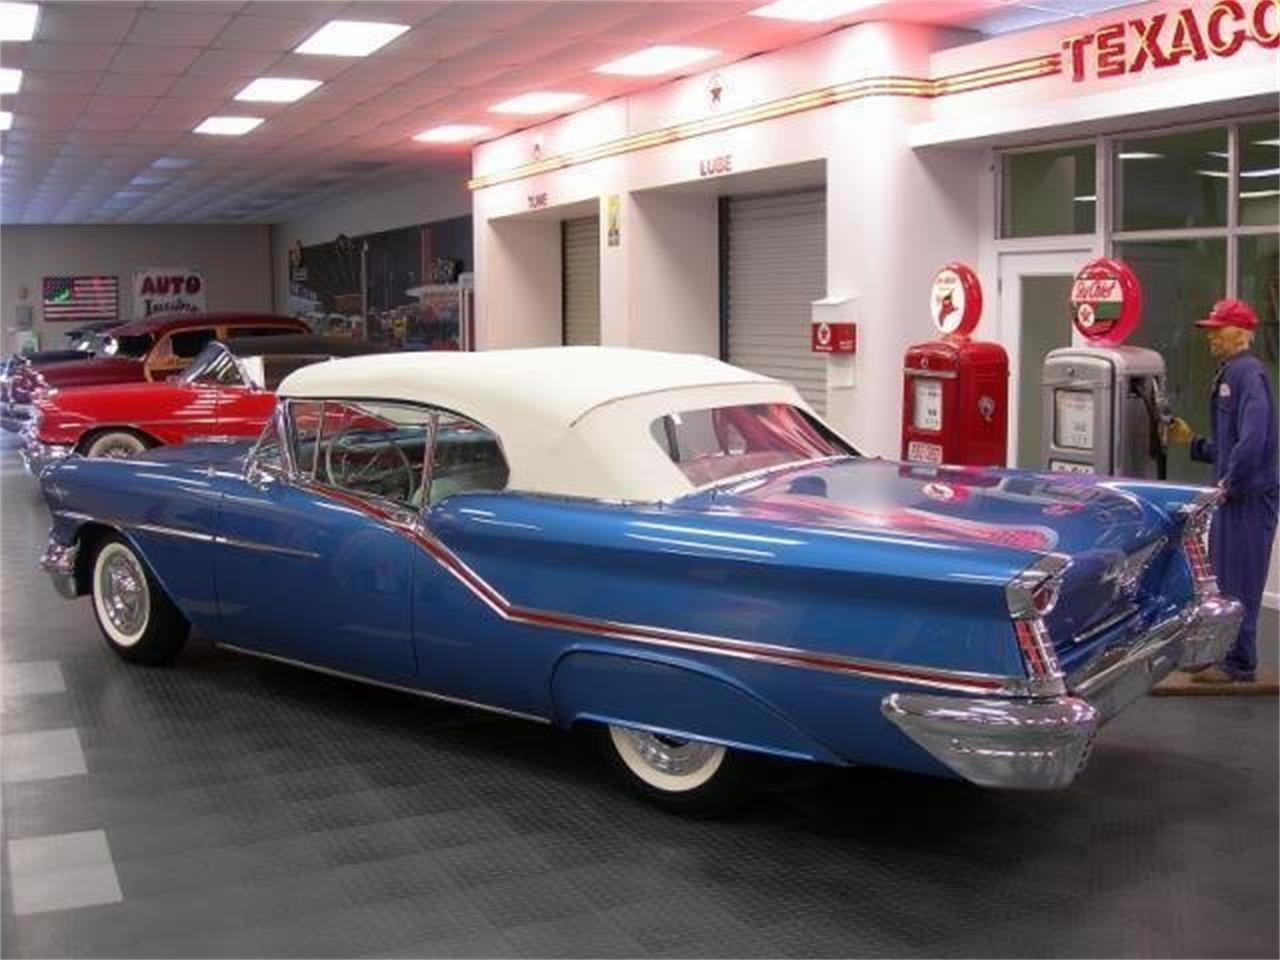 Large Picture of 1957 98 - $189,995.00 Offered by Auto Investors - MXBM